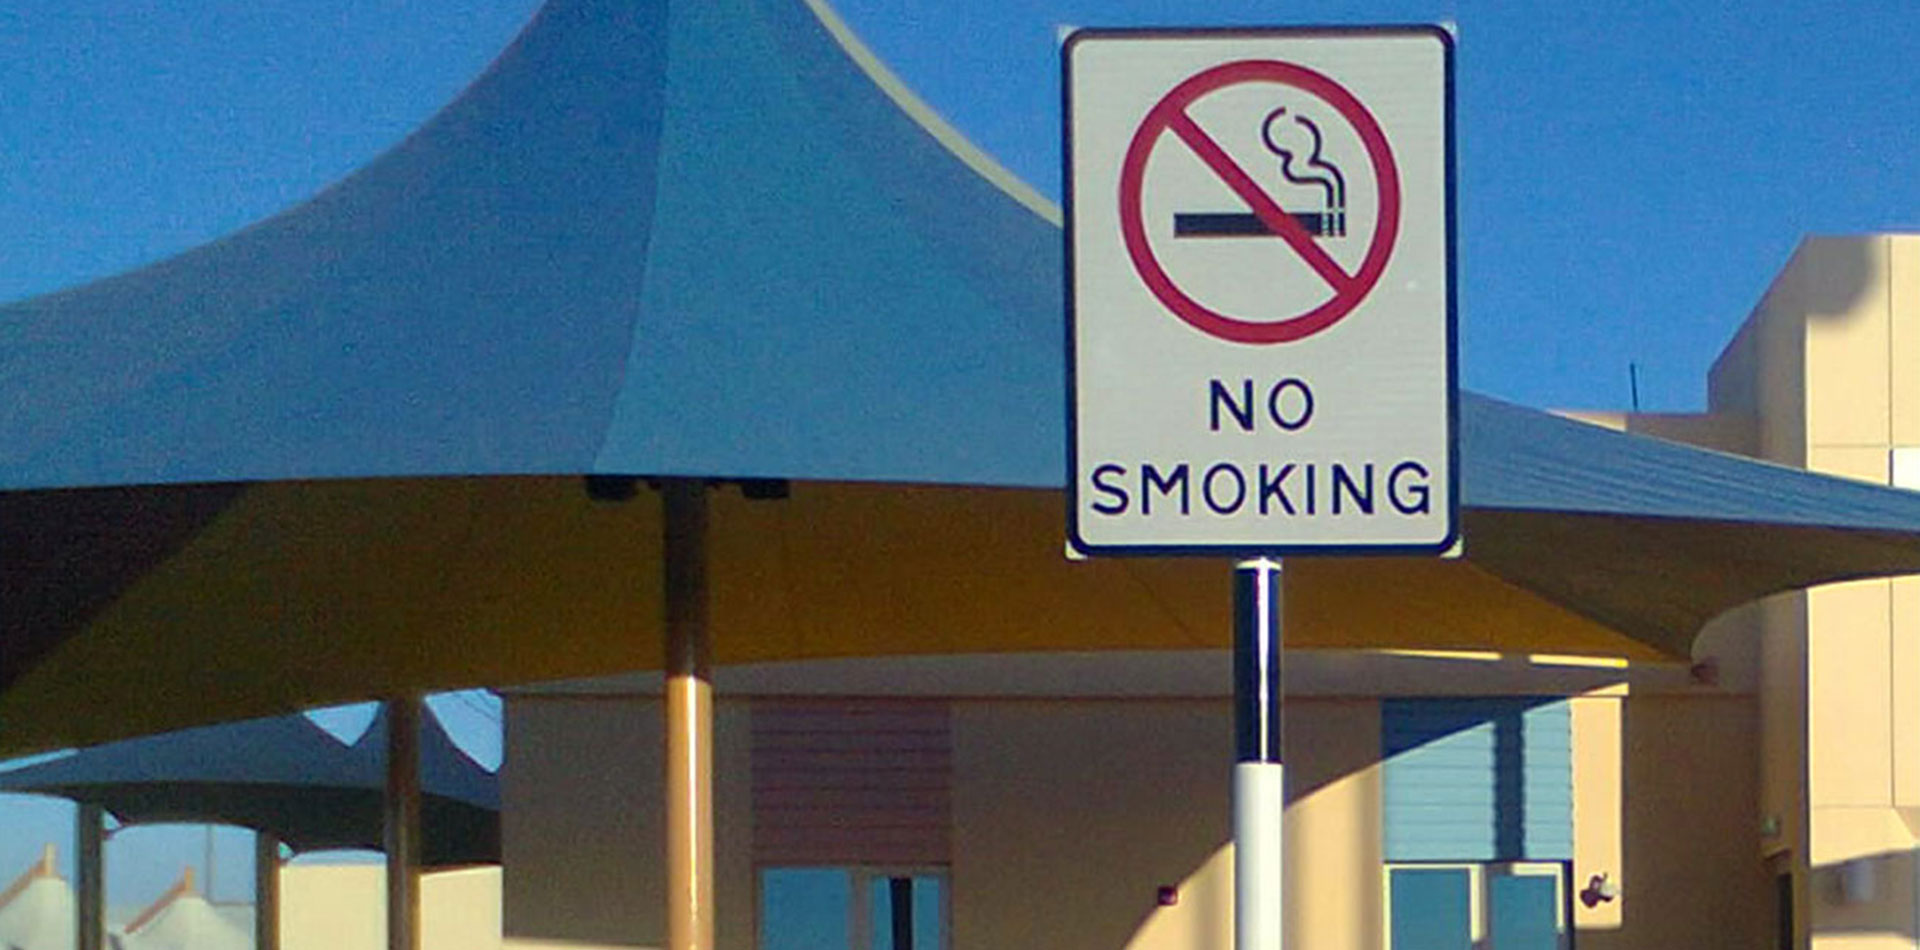 No Smoking Warning Signage